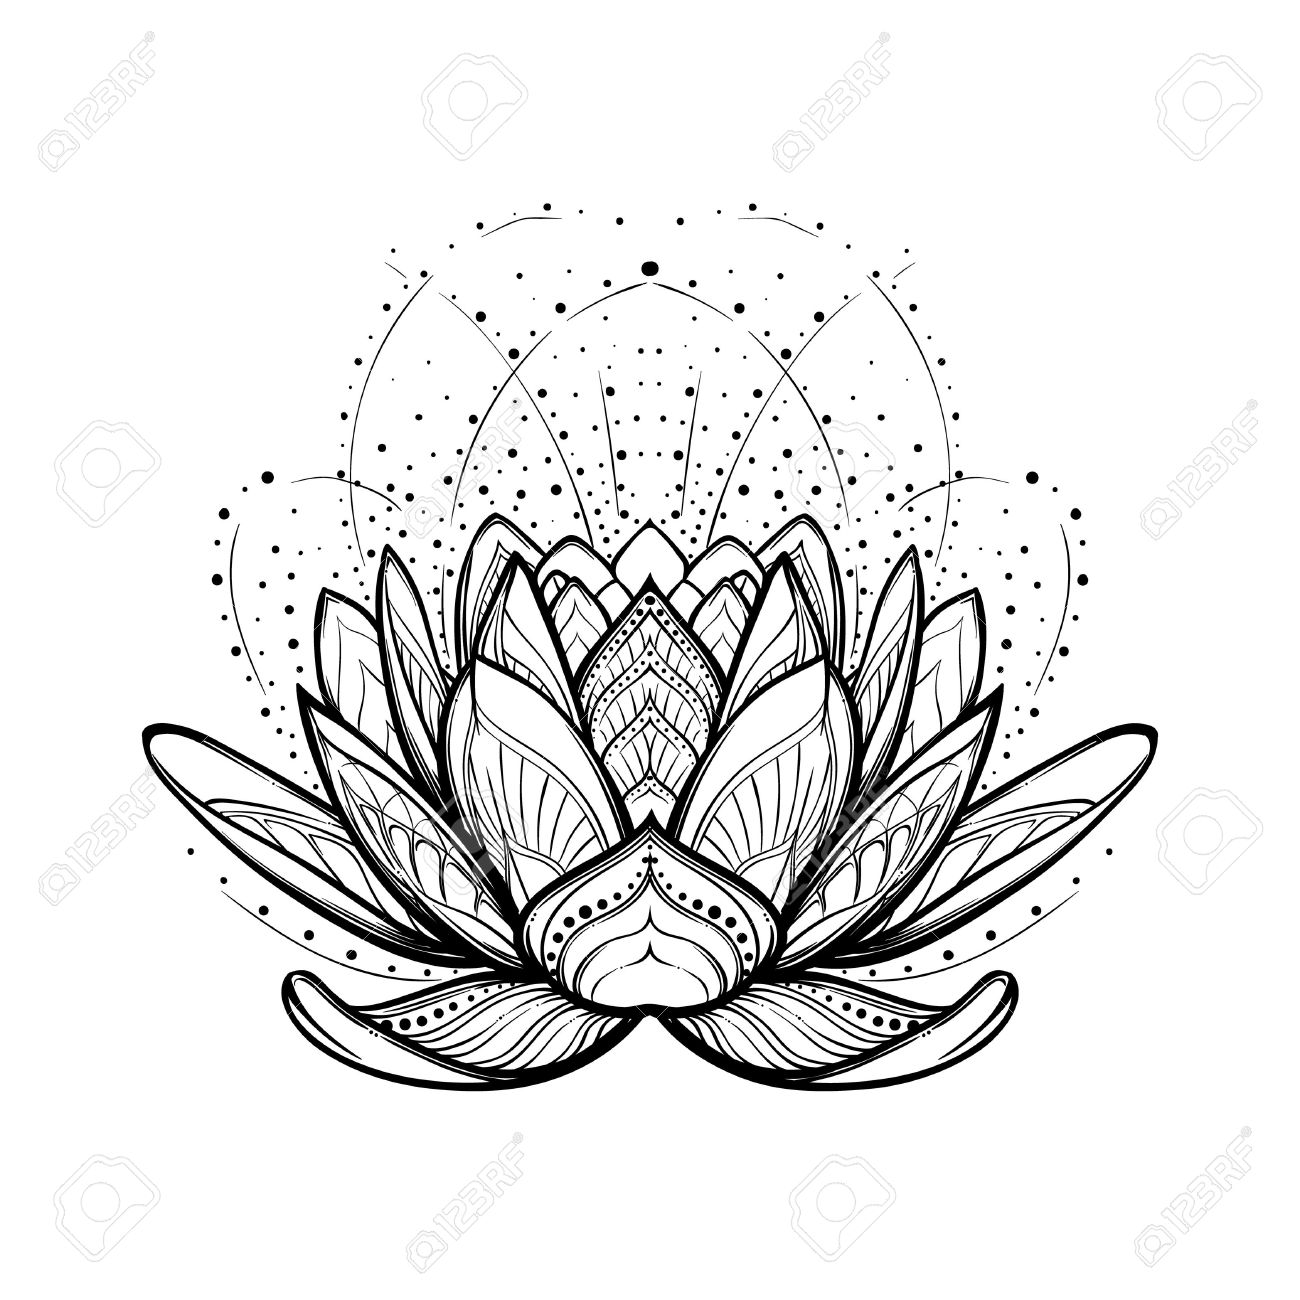 Line drawing lotus flower at getdrawings free for personal use 1300x1300 lotus flower intricate stylized linear drawing isolated on white mightylinksfo